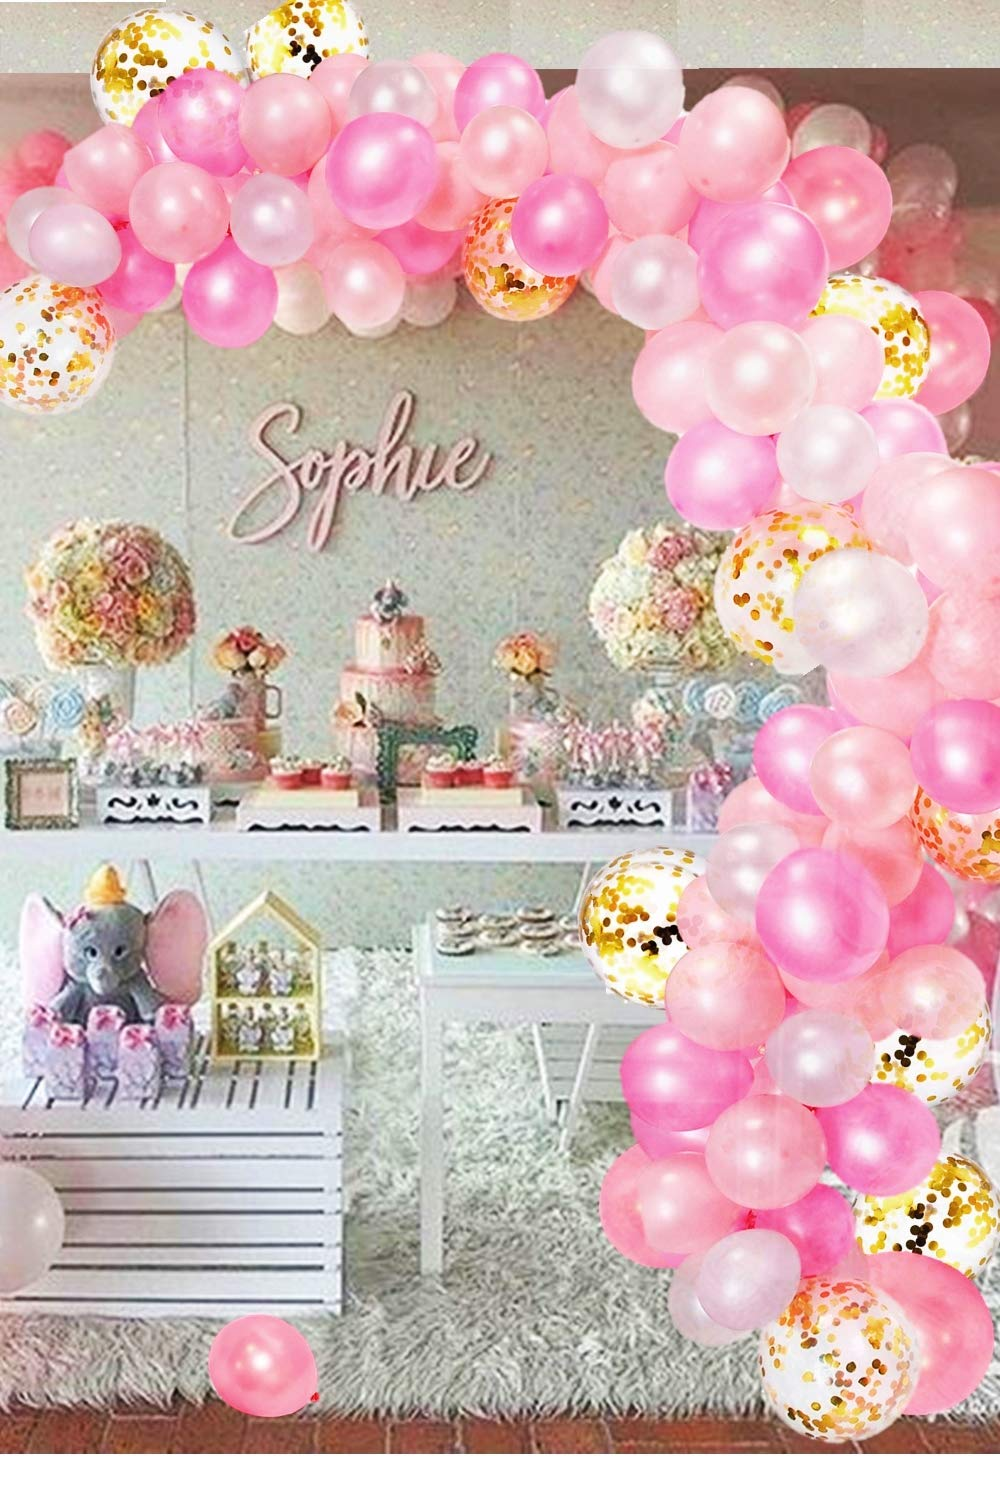 CADNLY Pink Balloon Garland Kit - 115-Piece White Pink and Gold Balloons for Pink Birthday Decorations Pastel Pink Baby Girl Balloon Arch for Princess Birthday Party Supplies Baby Shower Decorations for Girl